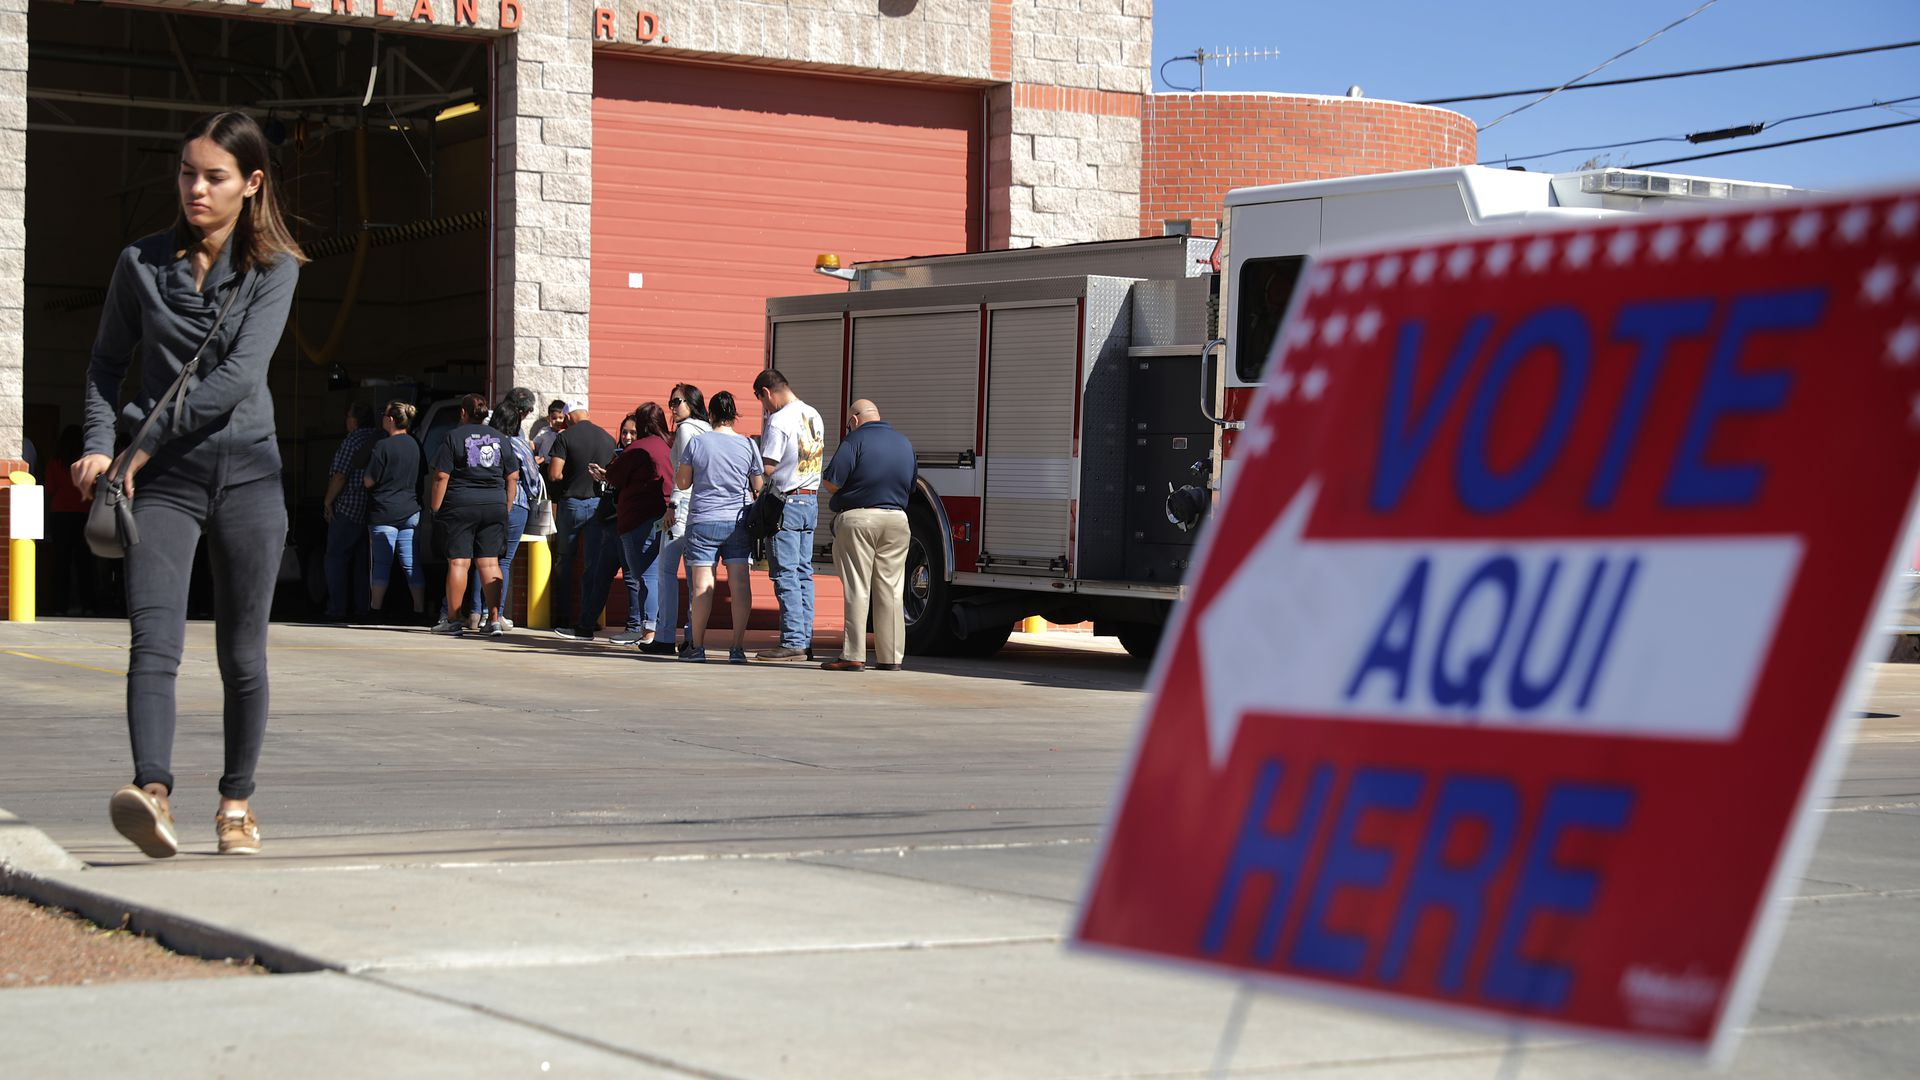 A federal judge has ordered Texas officials to halt the removal of any registered voter from state voter rolls.